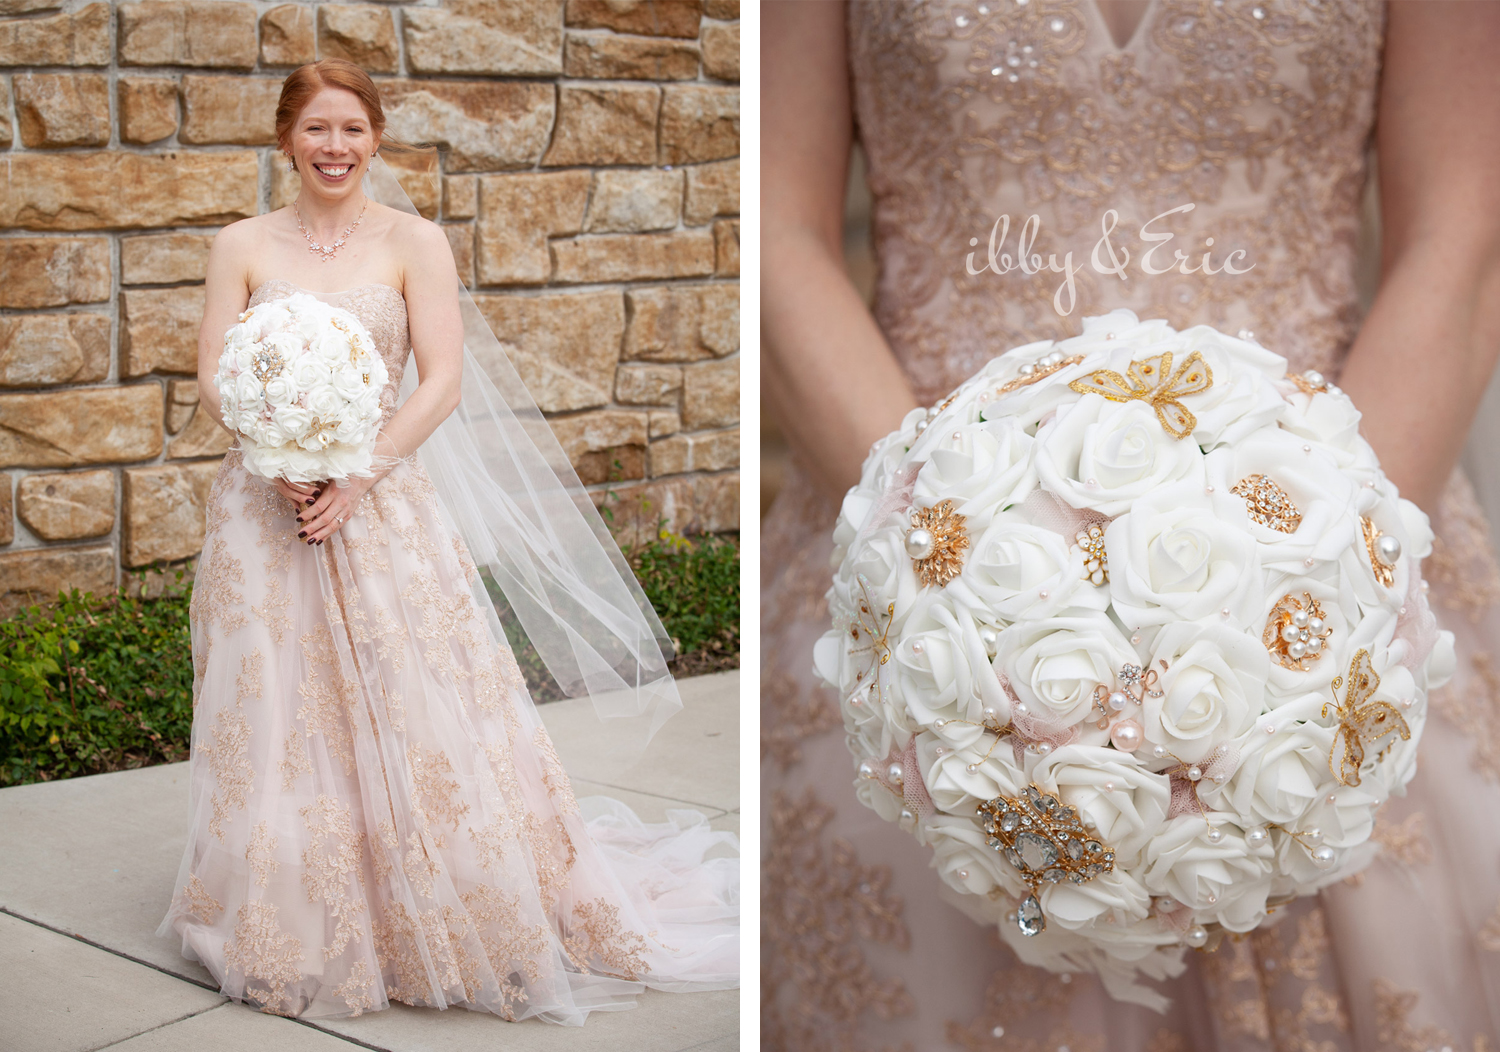 Red-headed bride wears a blush floral lace wedding gown and holds a homemade white rose and brooch bouquet.